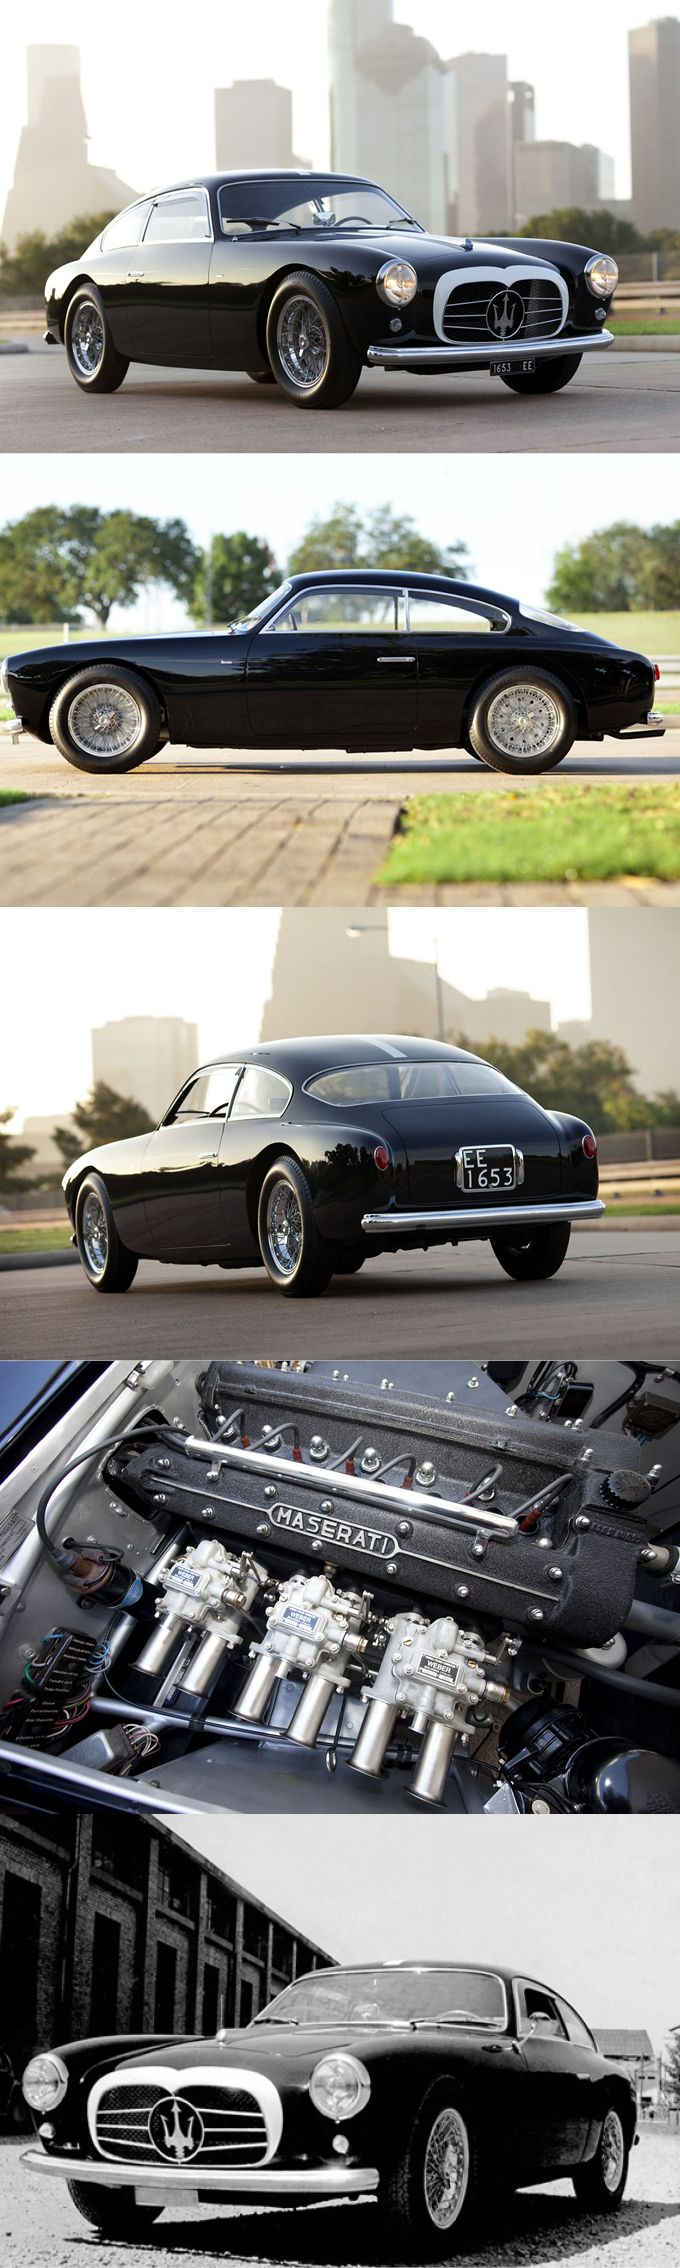 1955 Maserati A6G/54 / s/n 2105 1 of 21 produced / 150hp 2.0l L6 / black white / Italy / 17-293